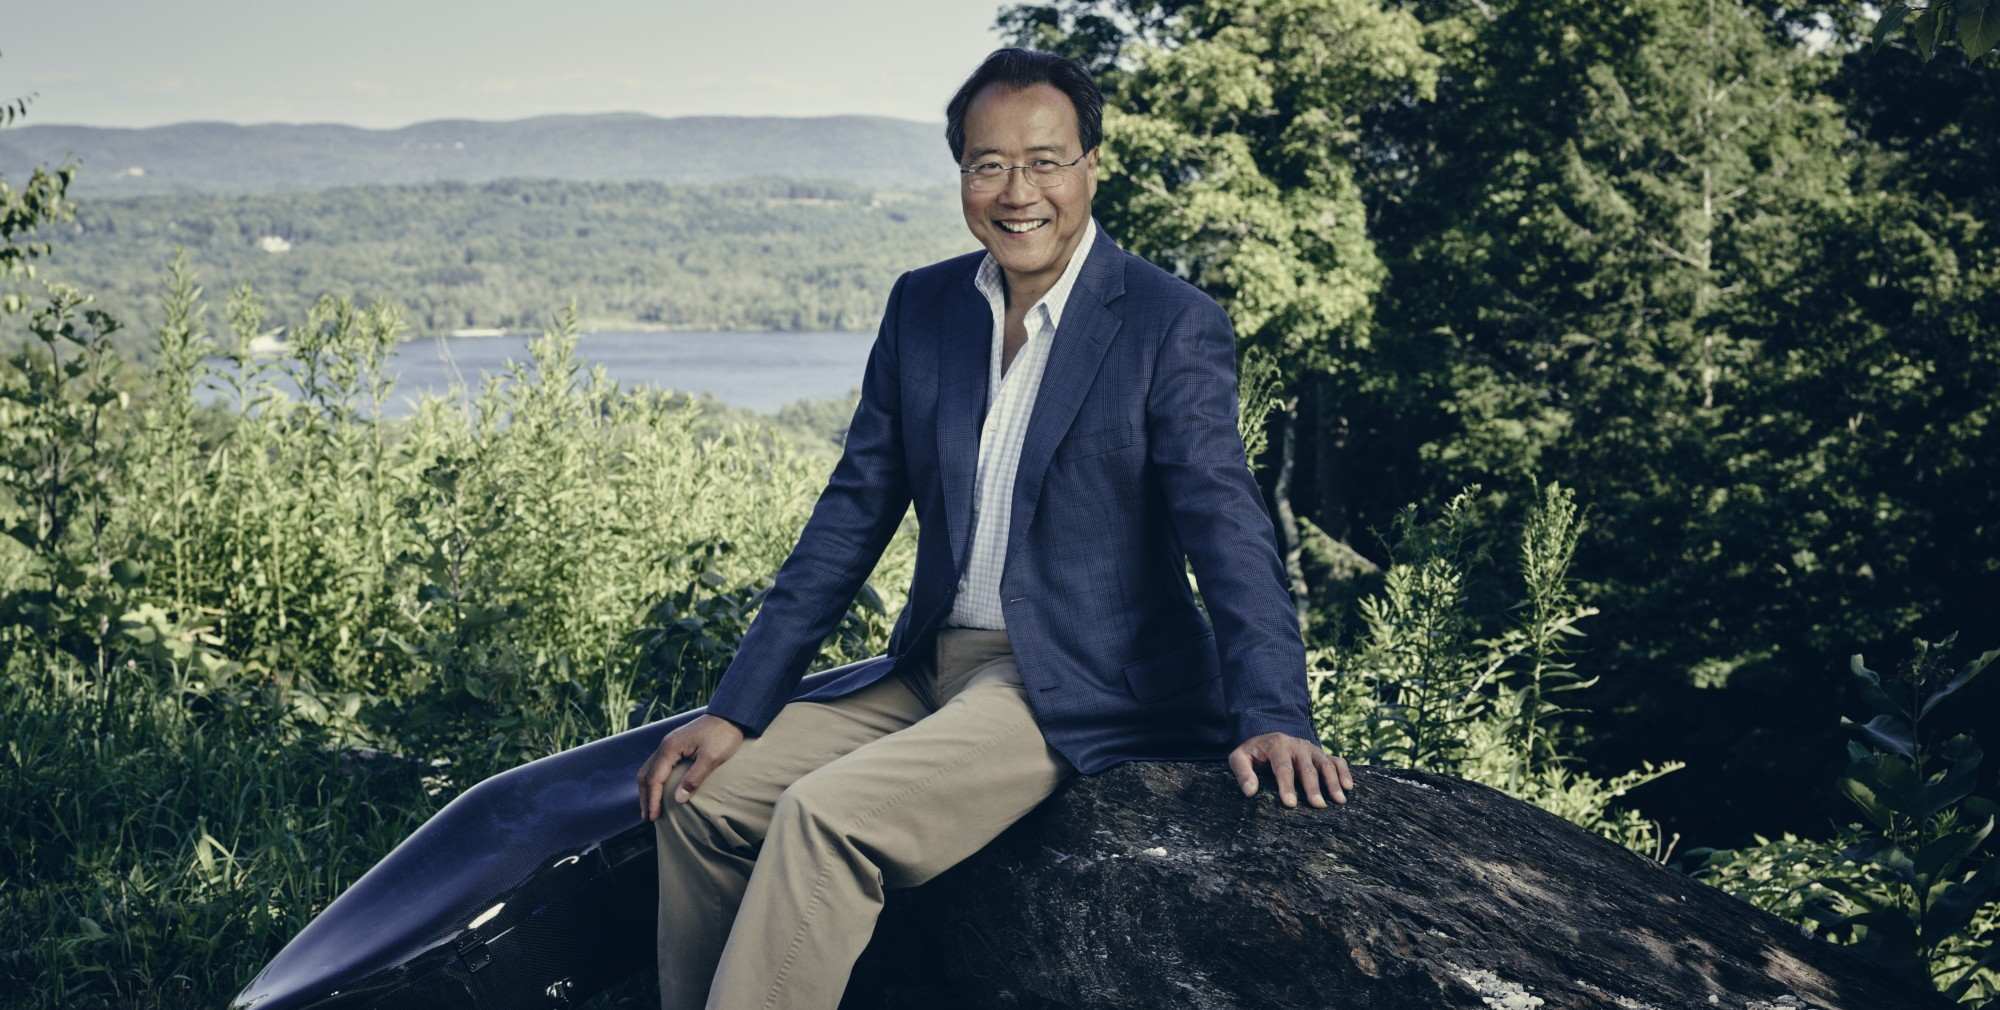 Yo-Yo Ma at Tanglewood August 2019